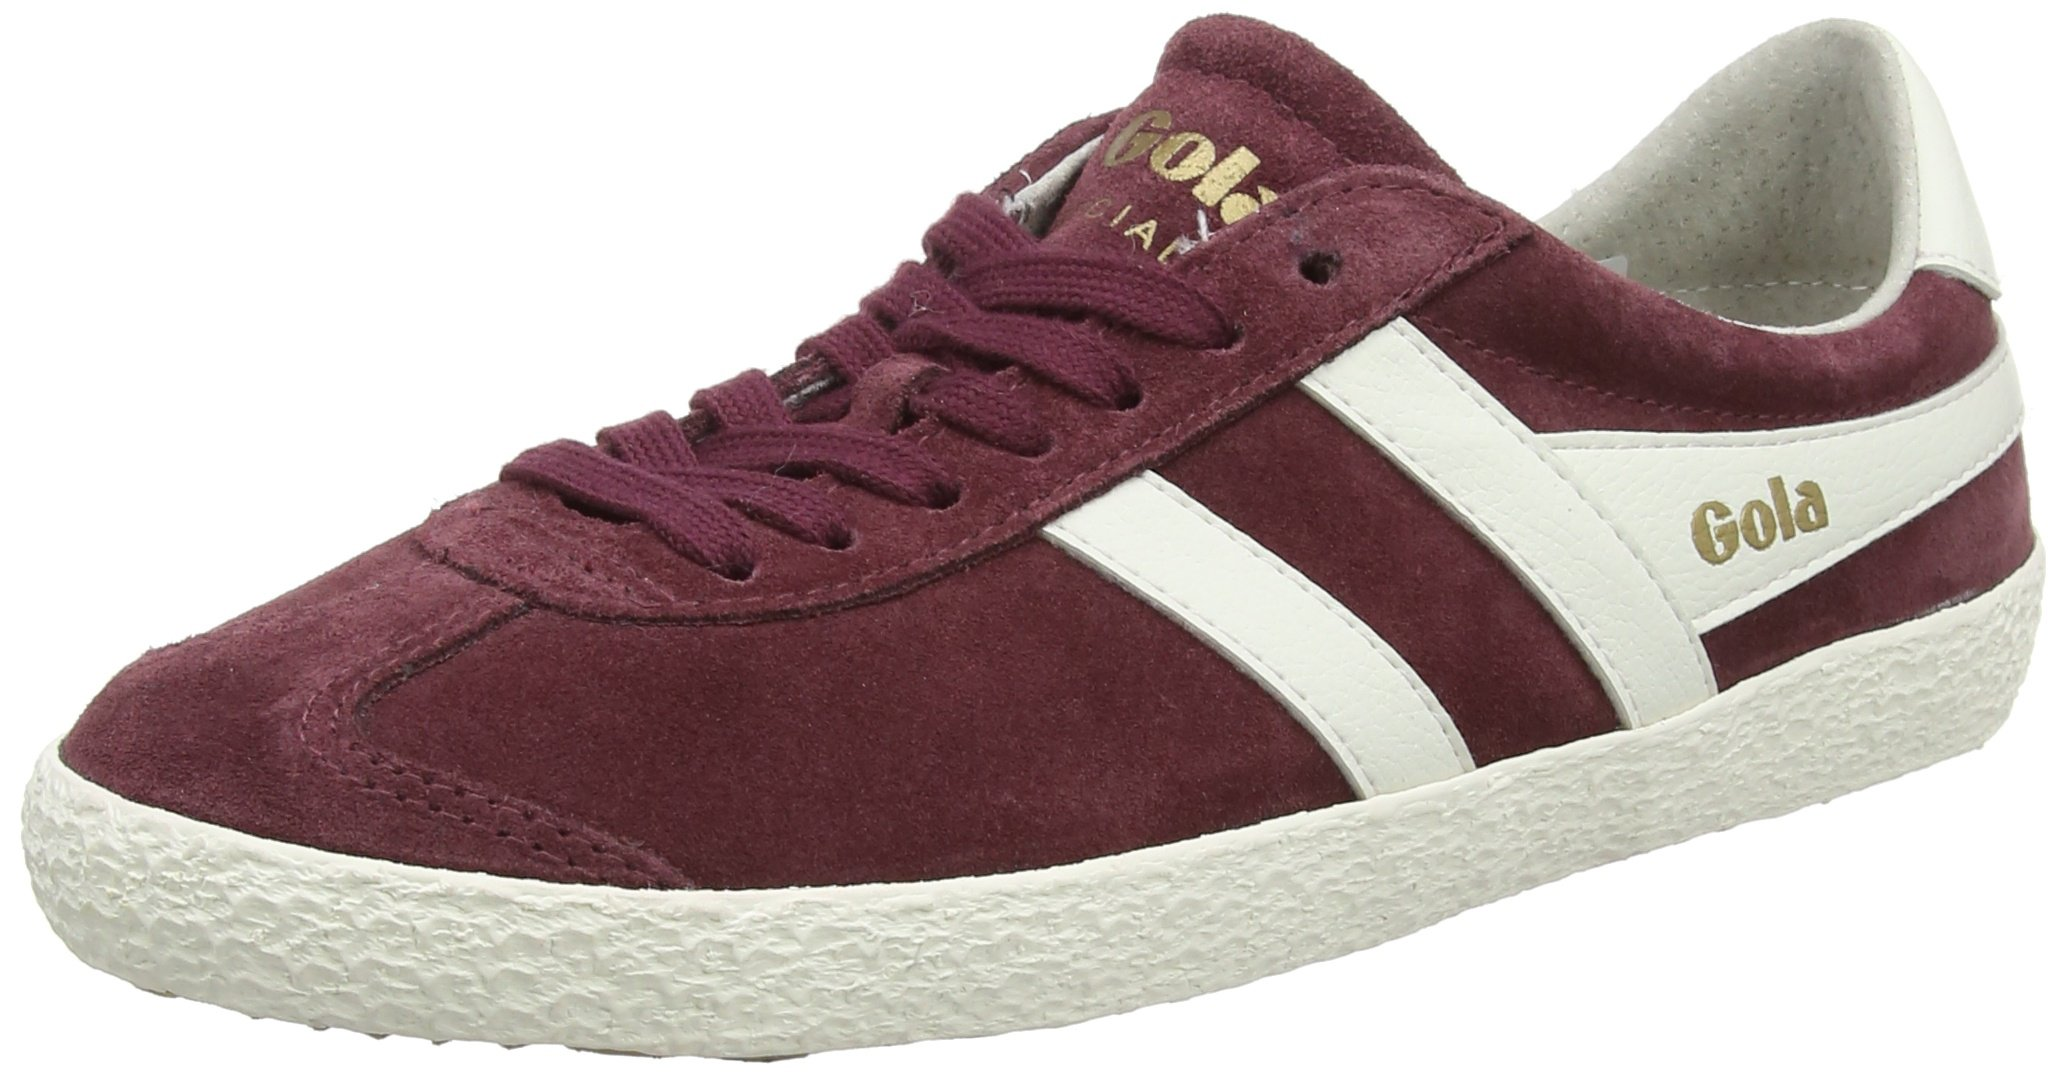 Eu off SpecialistBaskets FemmeRougeburgundy White39 Gola VpMSUz